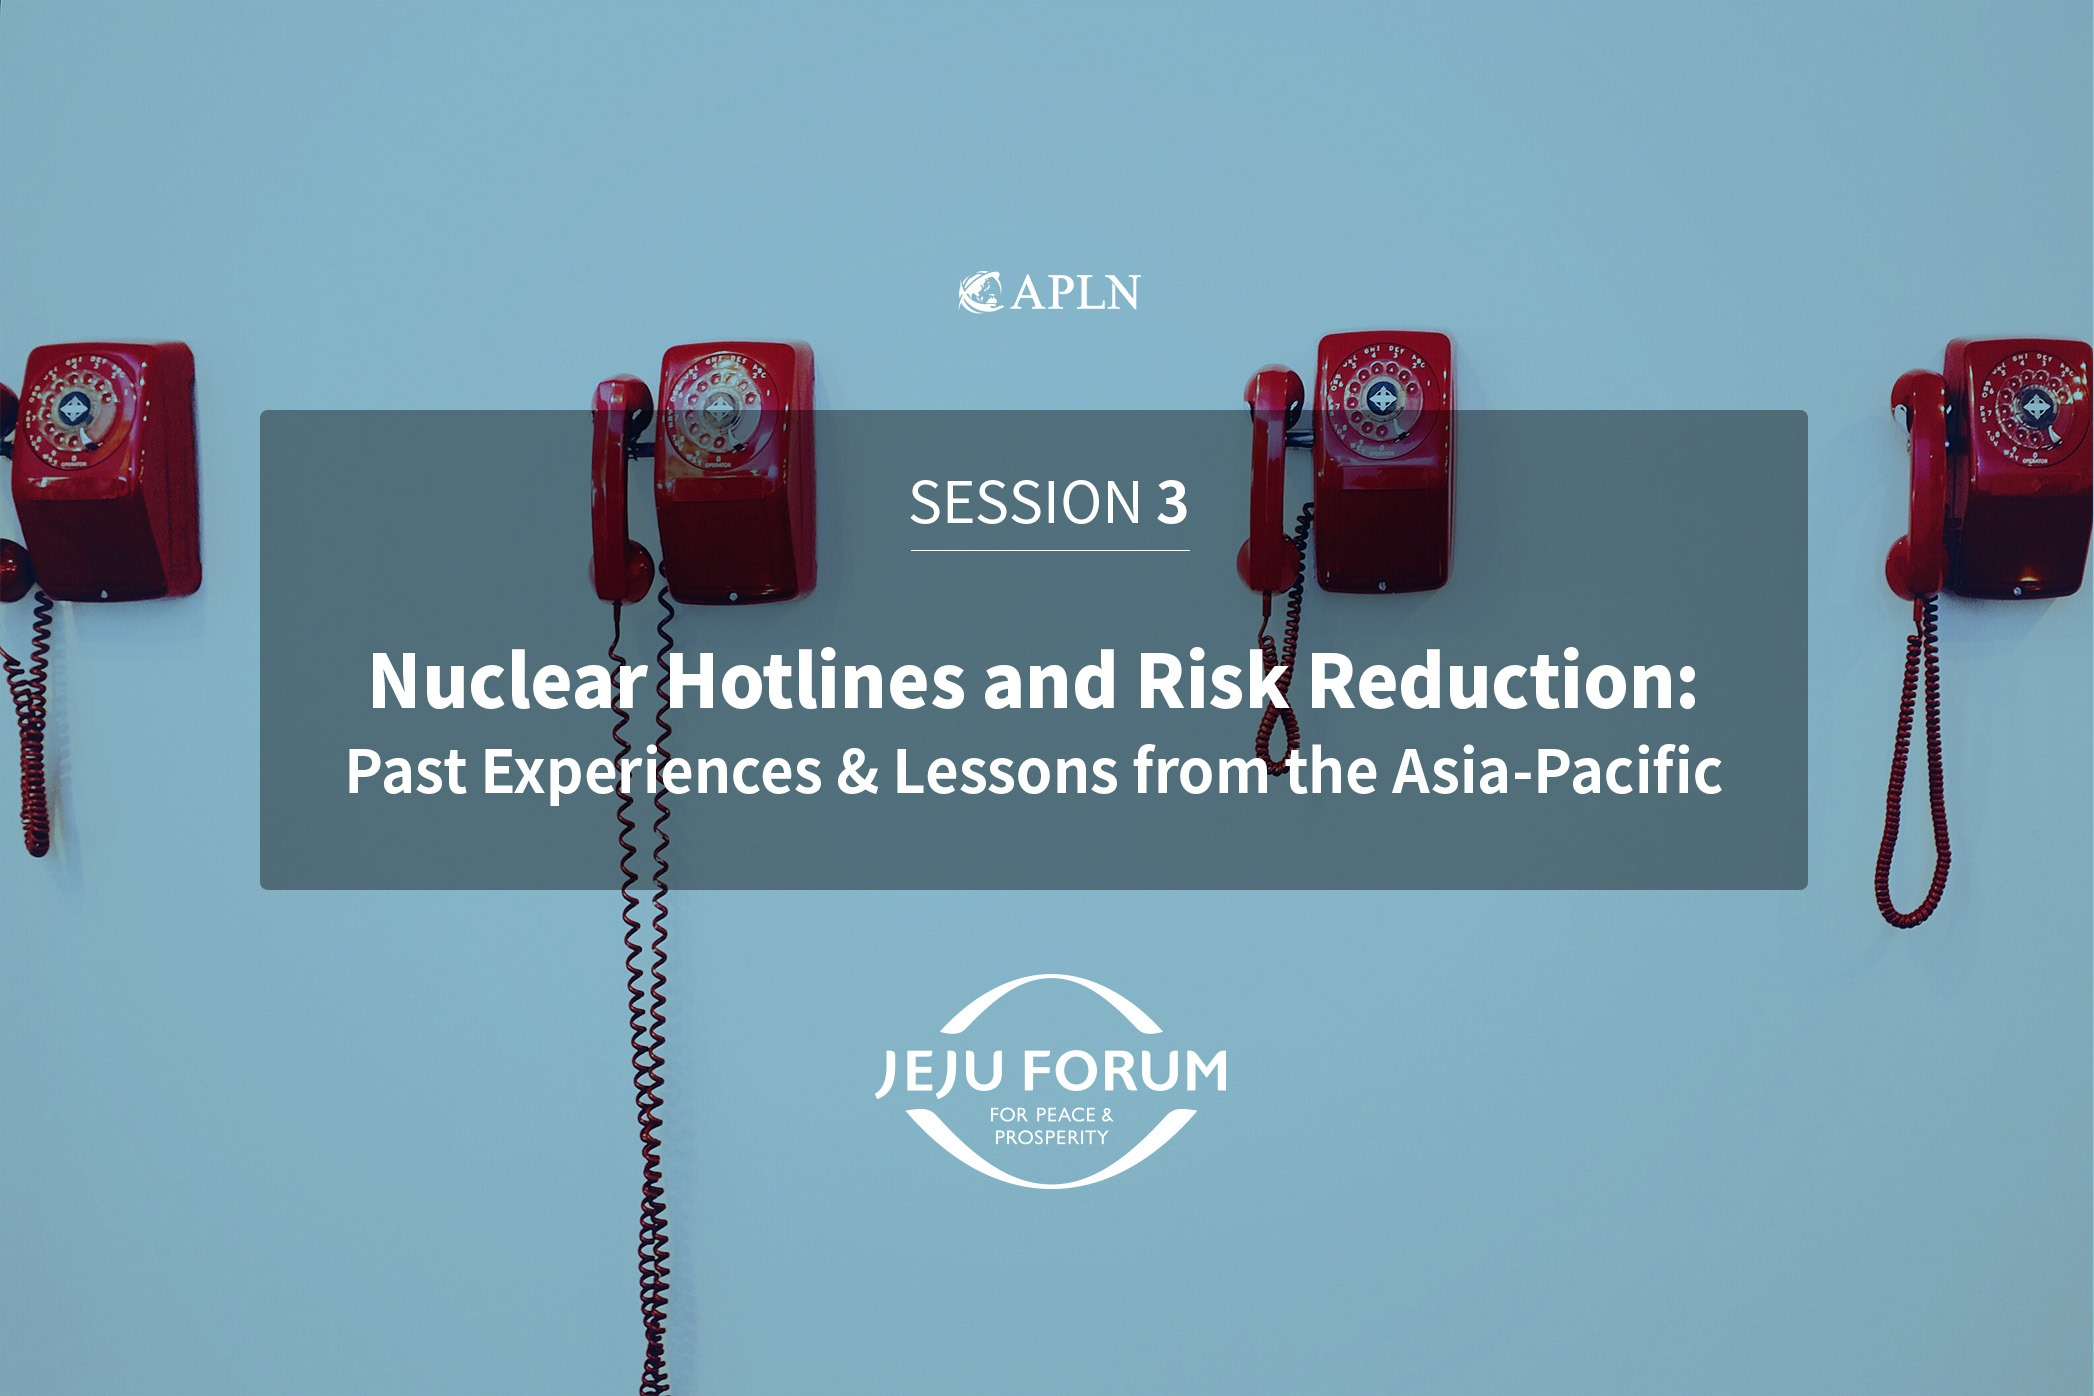 Nuclear Hotlines and Risk Reduction: Past Experiences and Lessons from the Asia Pacific